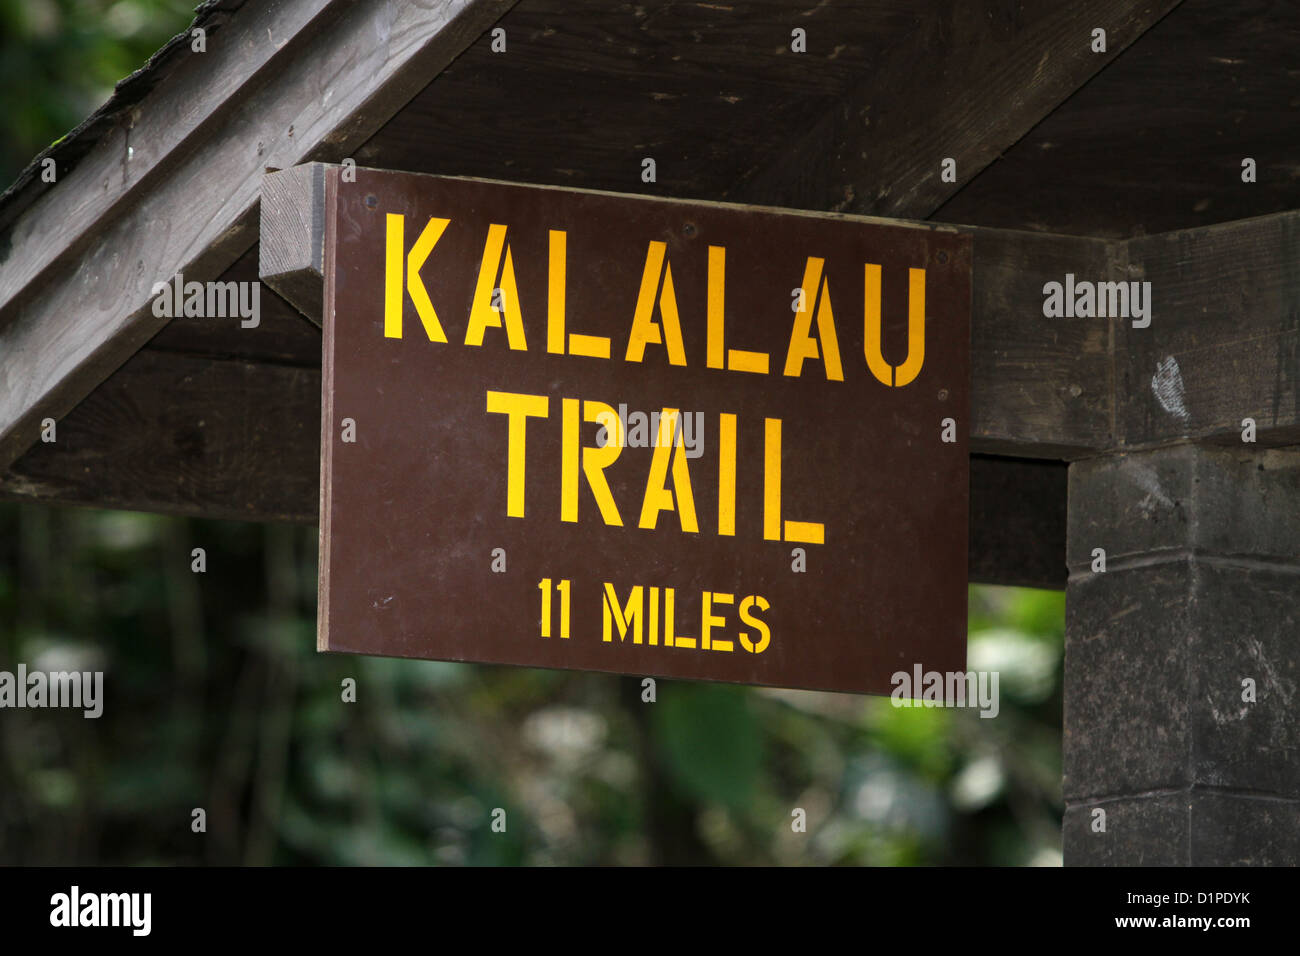 Kalalau trail head sign marking a trail along the Na Pali Coast on the island of Kauai, Hawaii, USA. - Stock Image